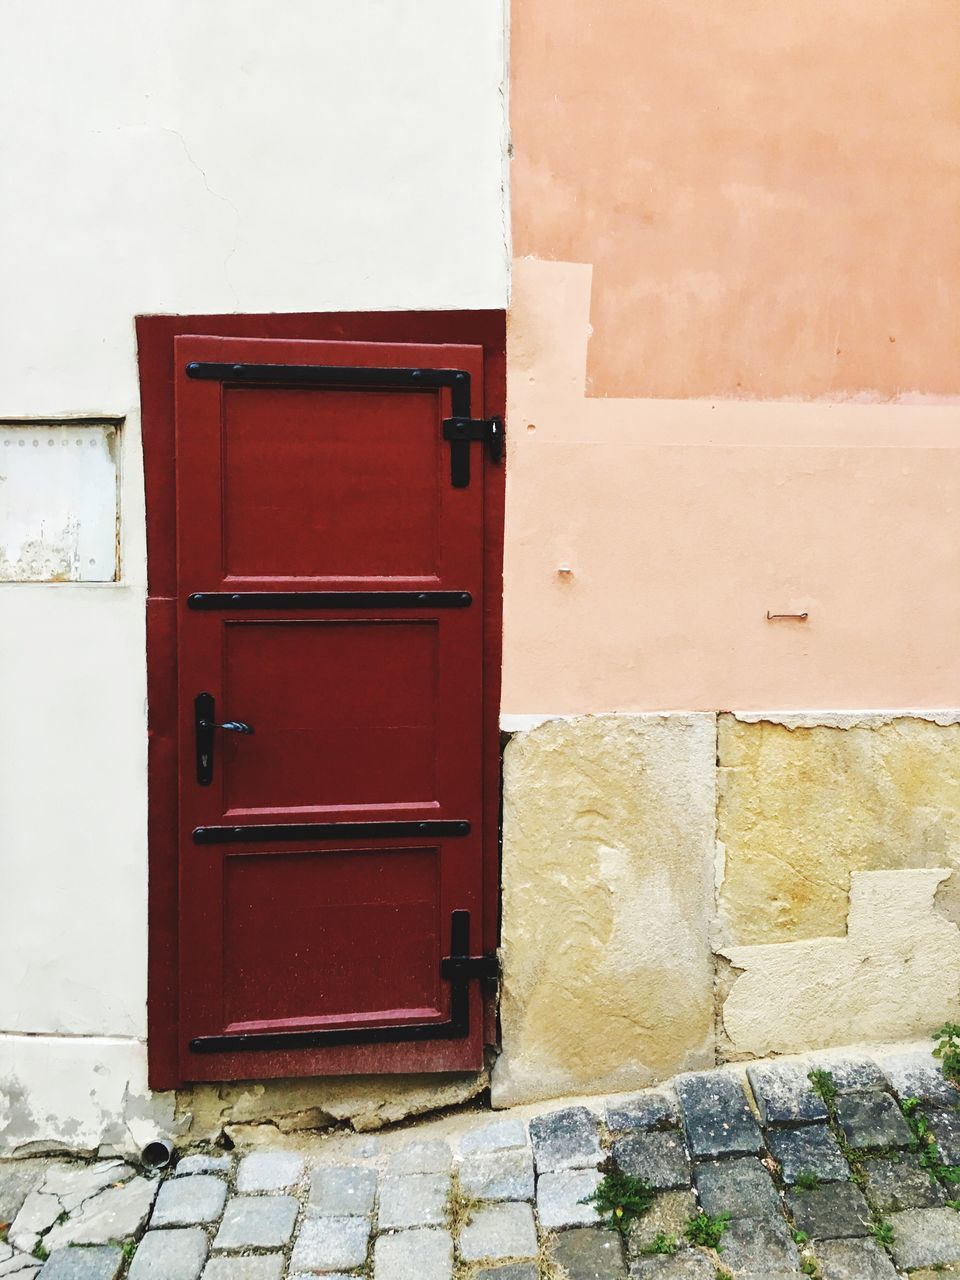 door, architecture, built structure, red, day, no people, outdoors, building exterior, public mailbox, close-up